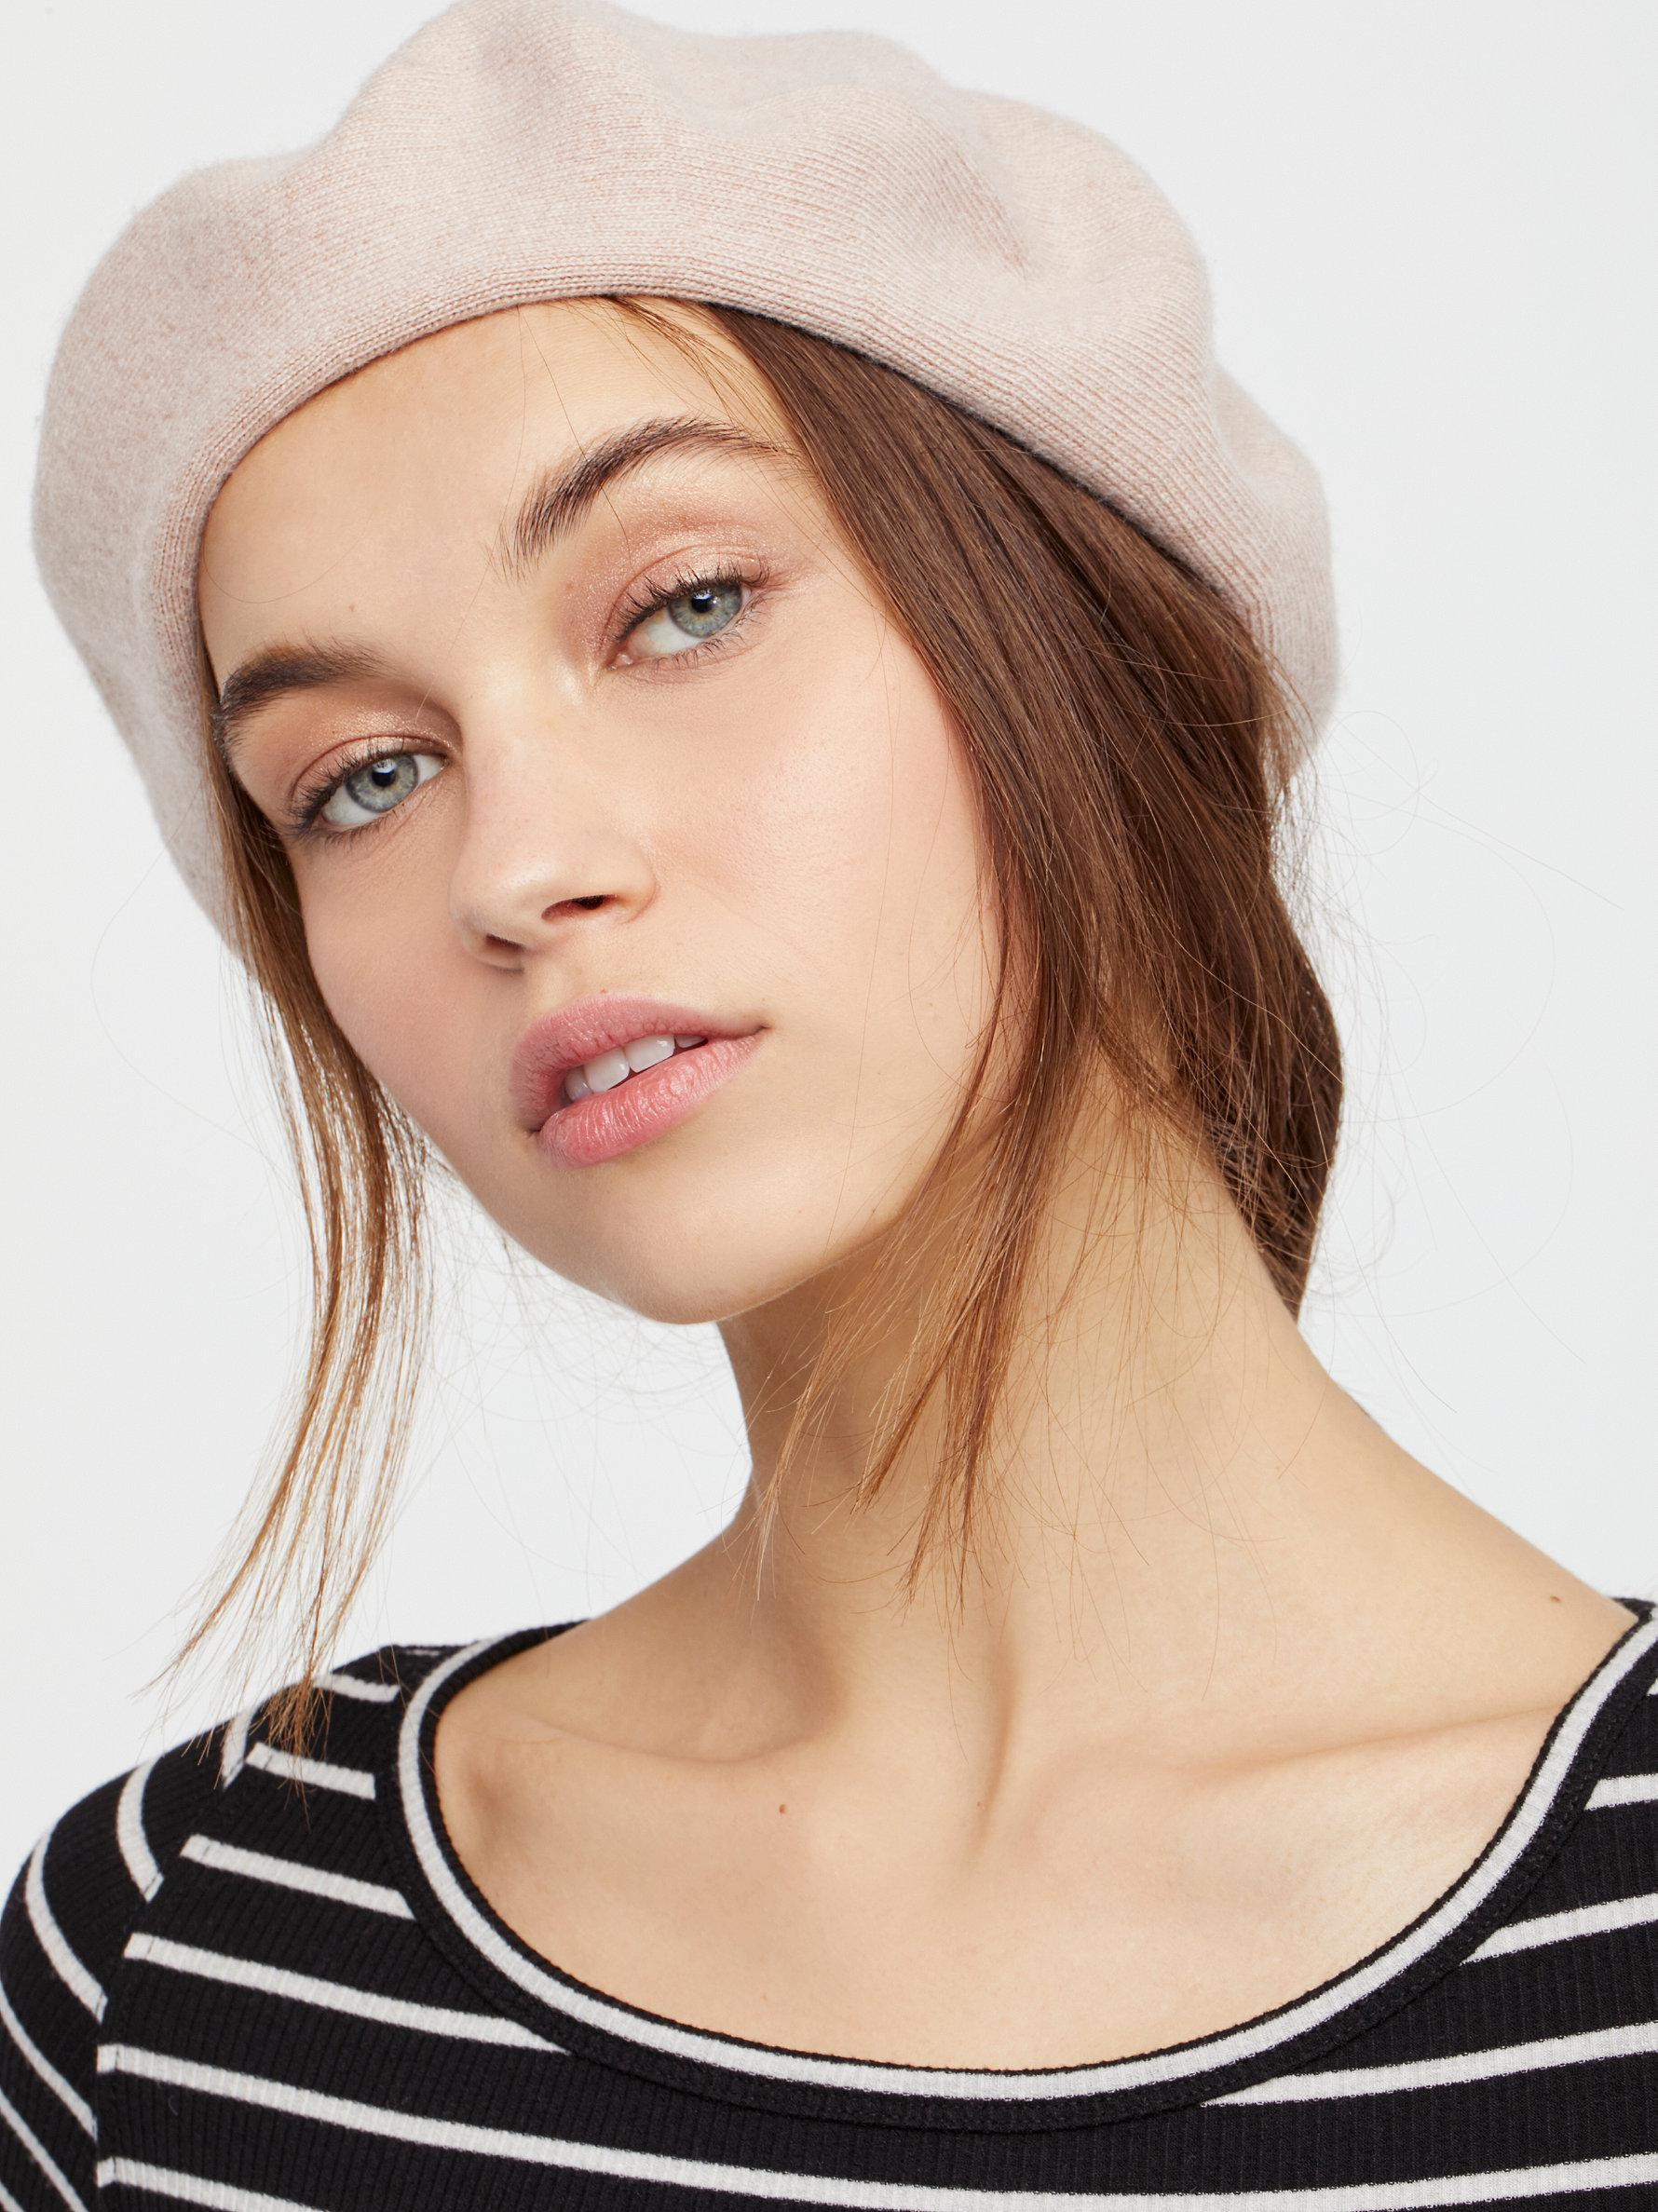 ba3614a5f7b72 Free People Merci Knit Beret in Pink - Lyst